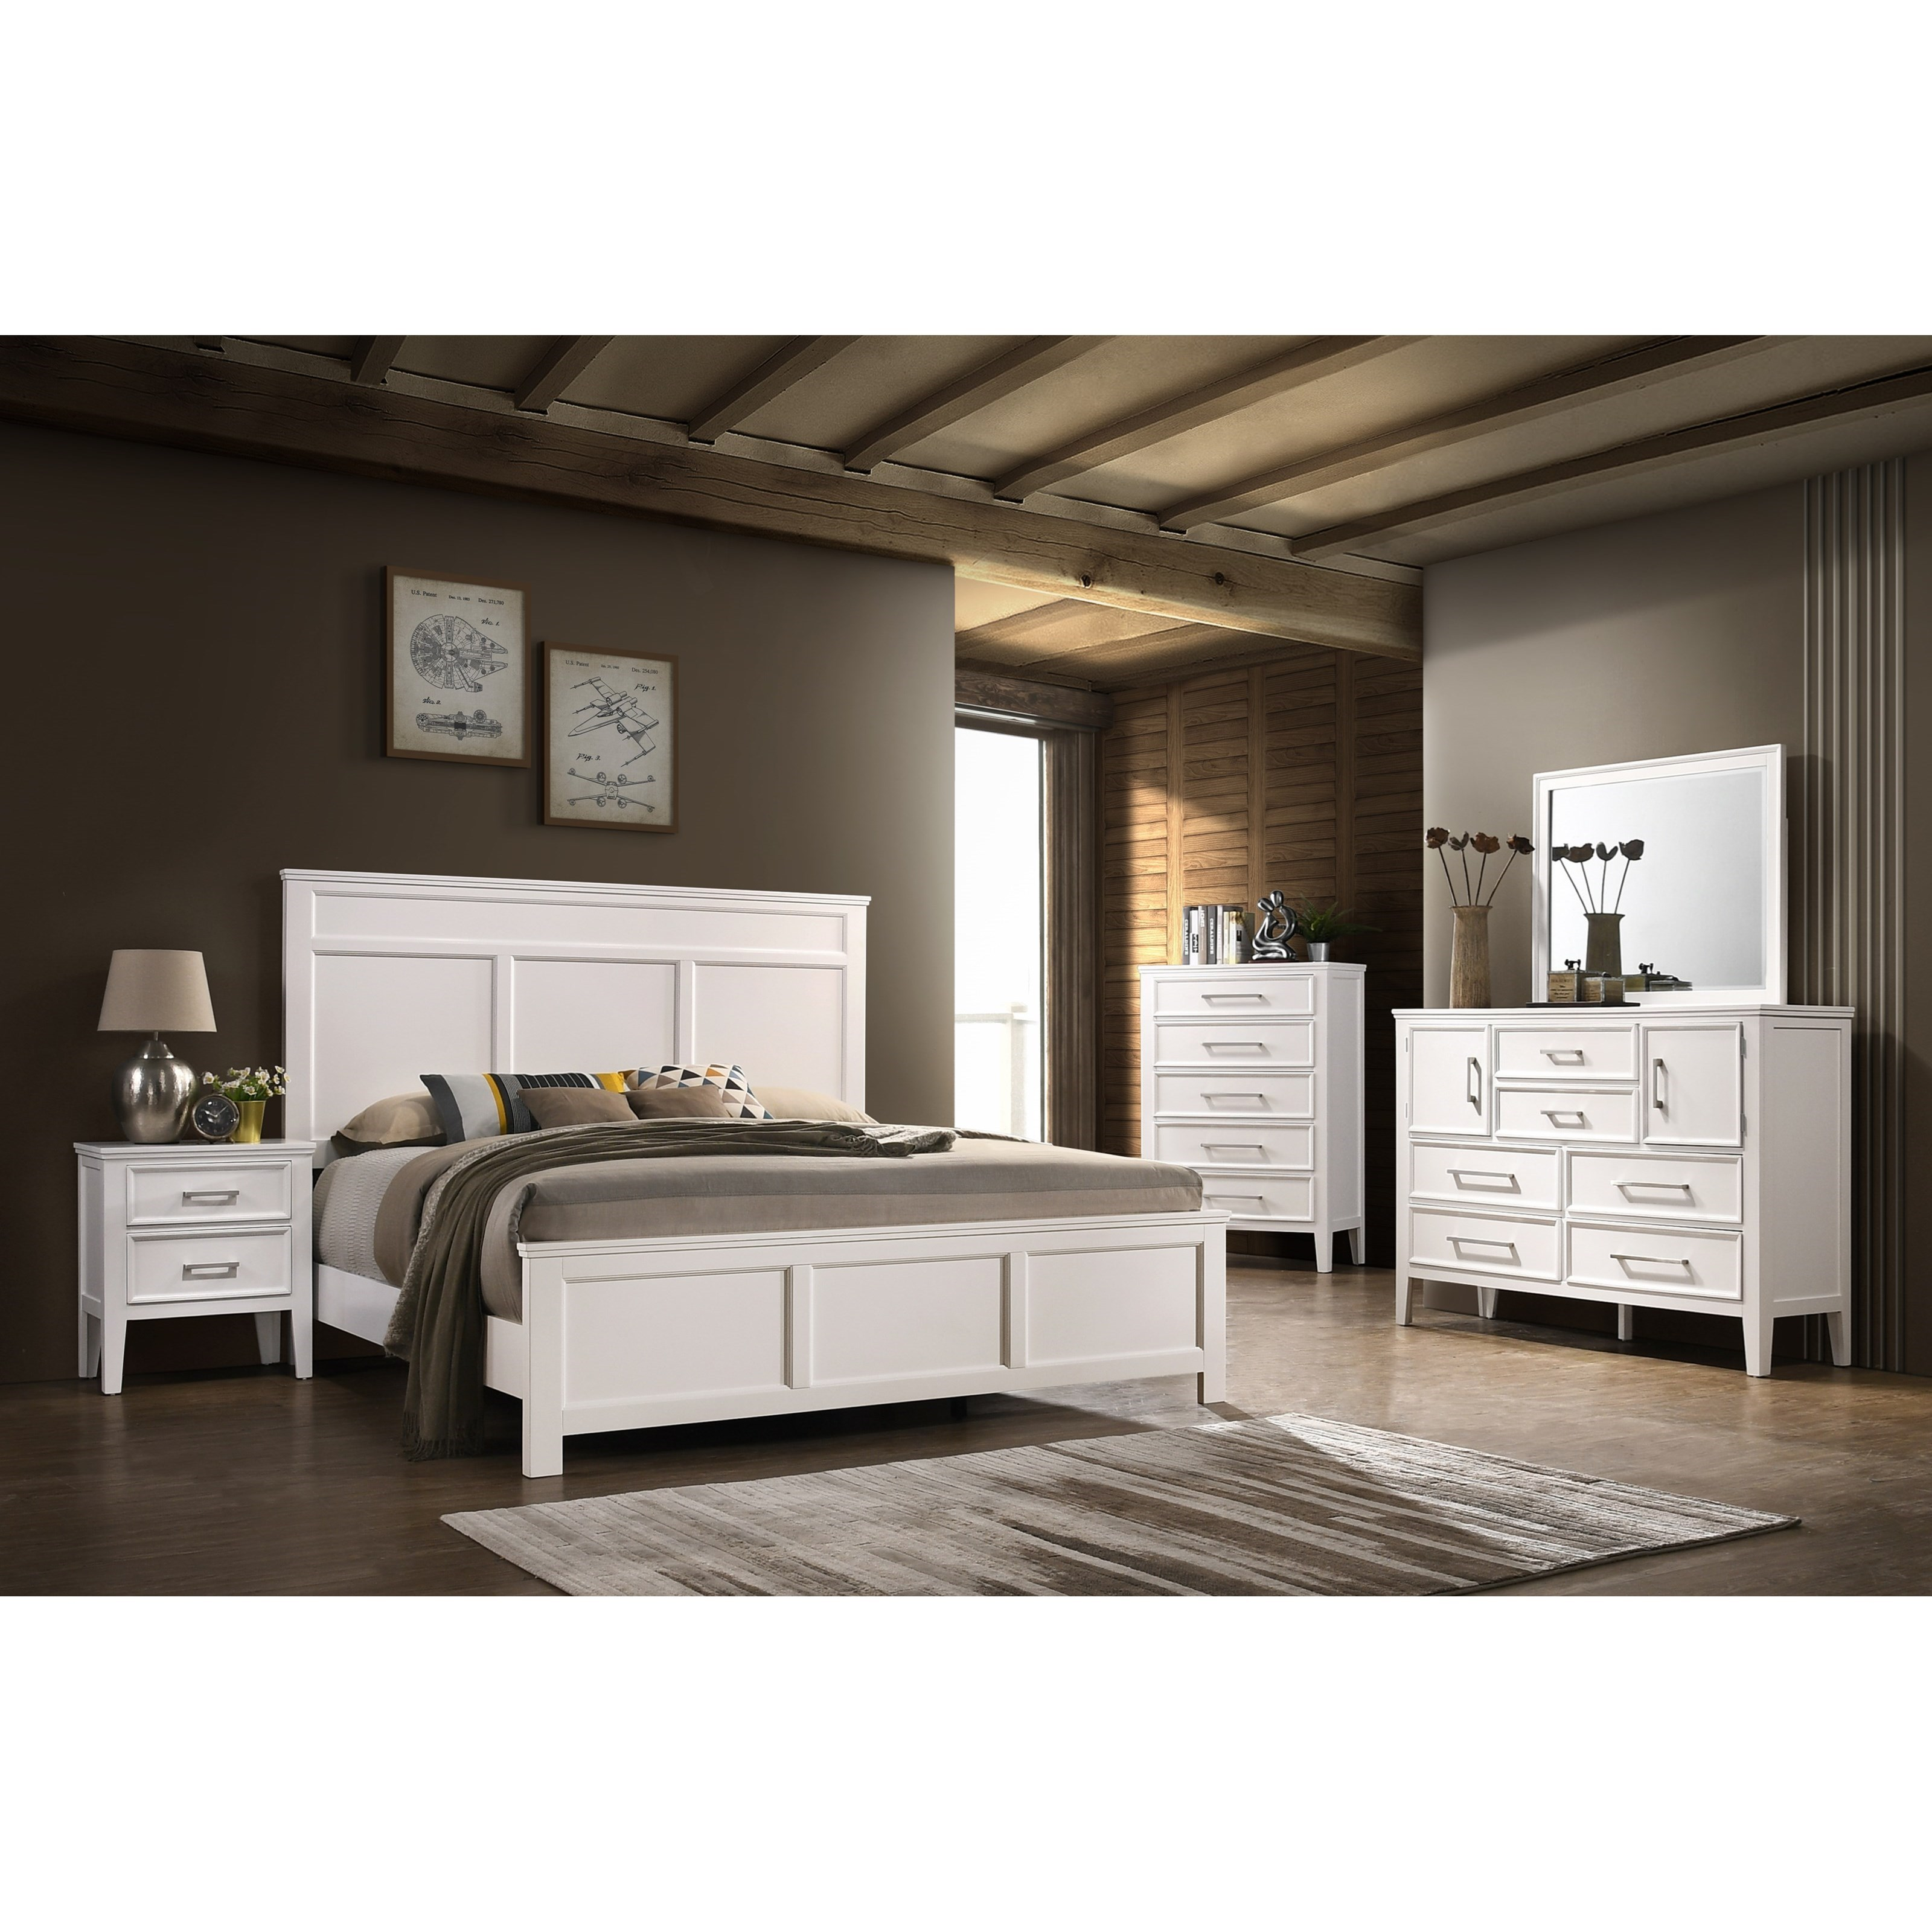 Andover King Bedroom Group by New Classic at Rife's Home Furniture